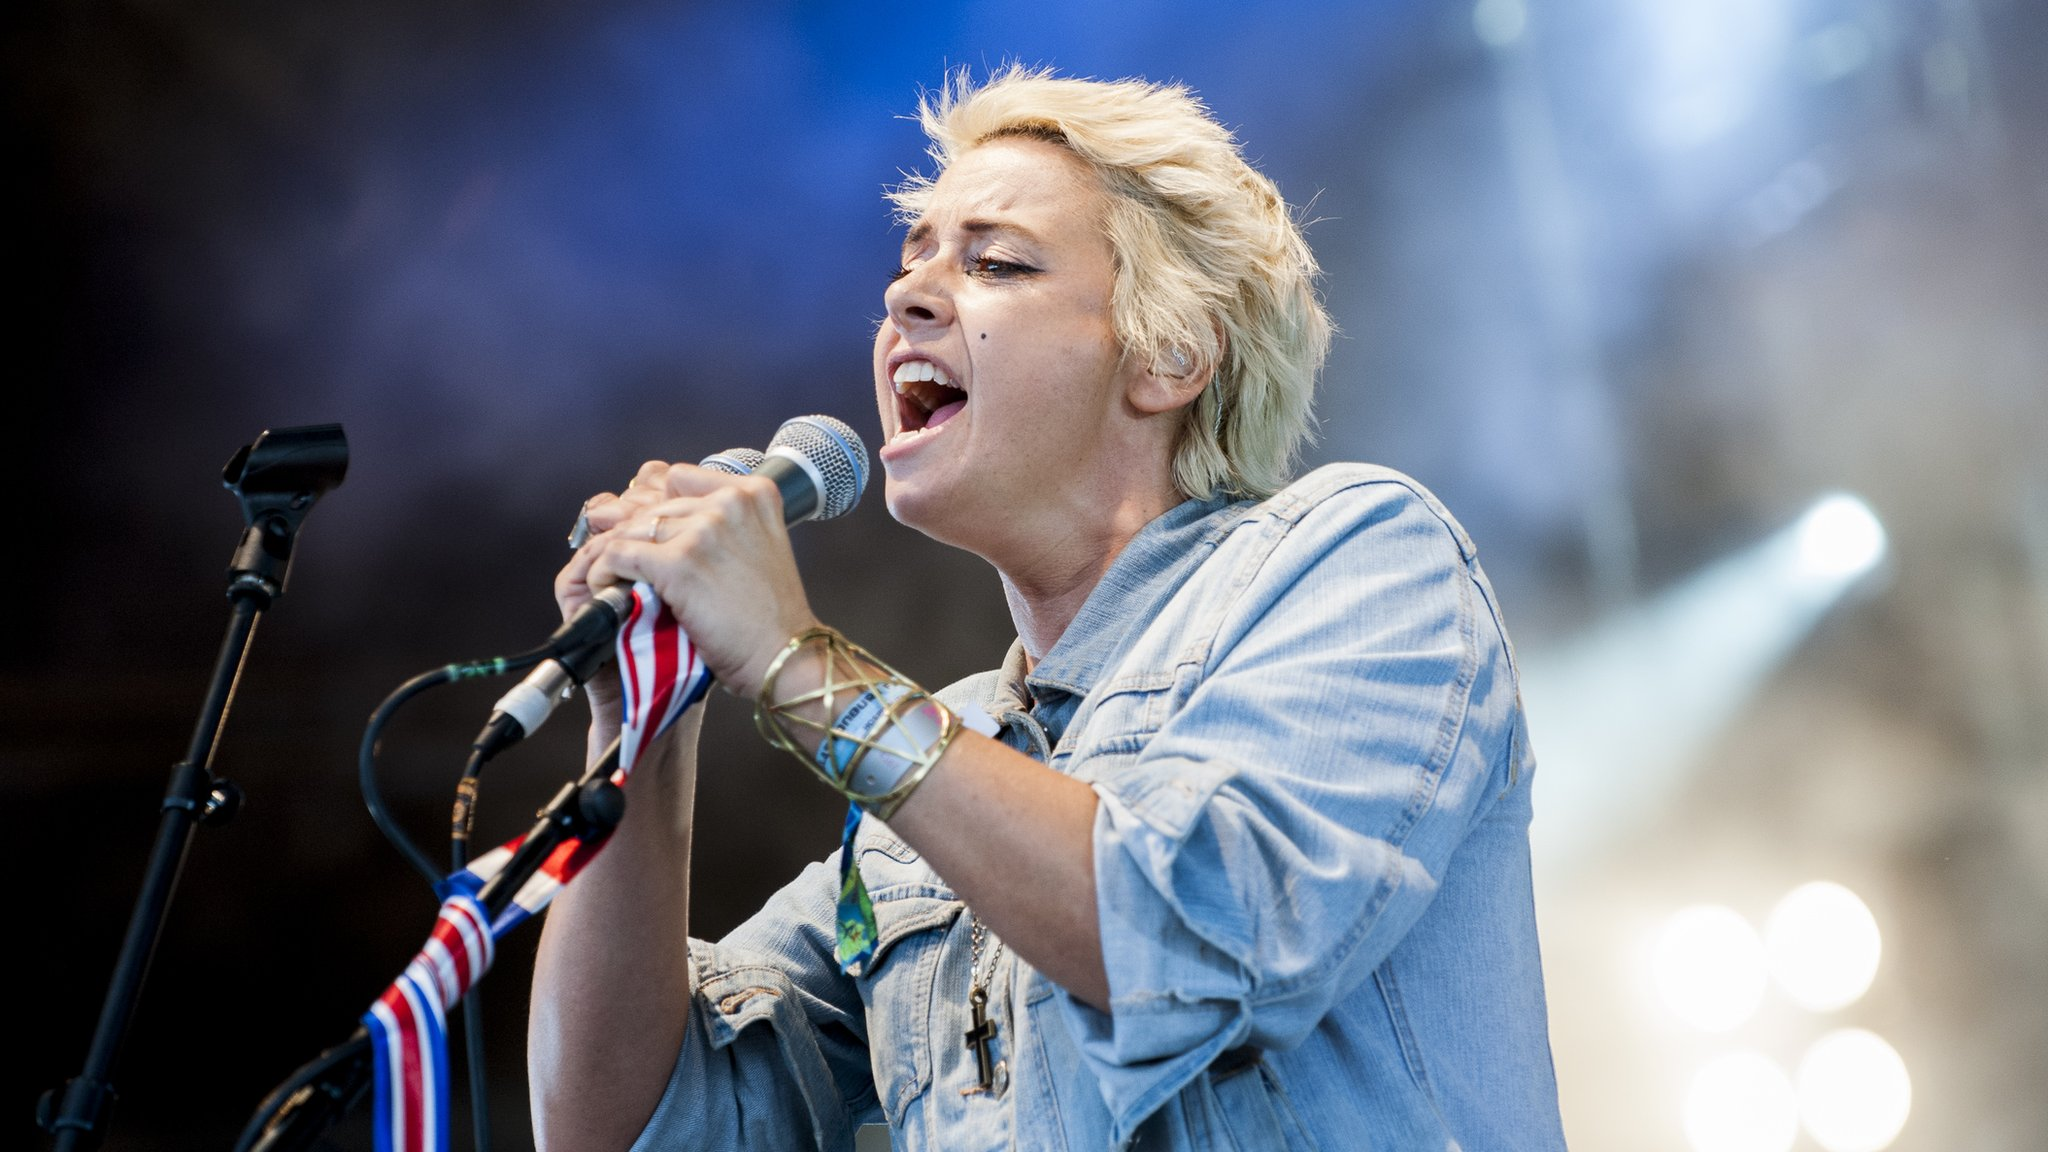 BBC News - Eden Festival expects record crowd